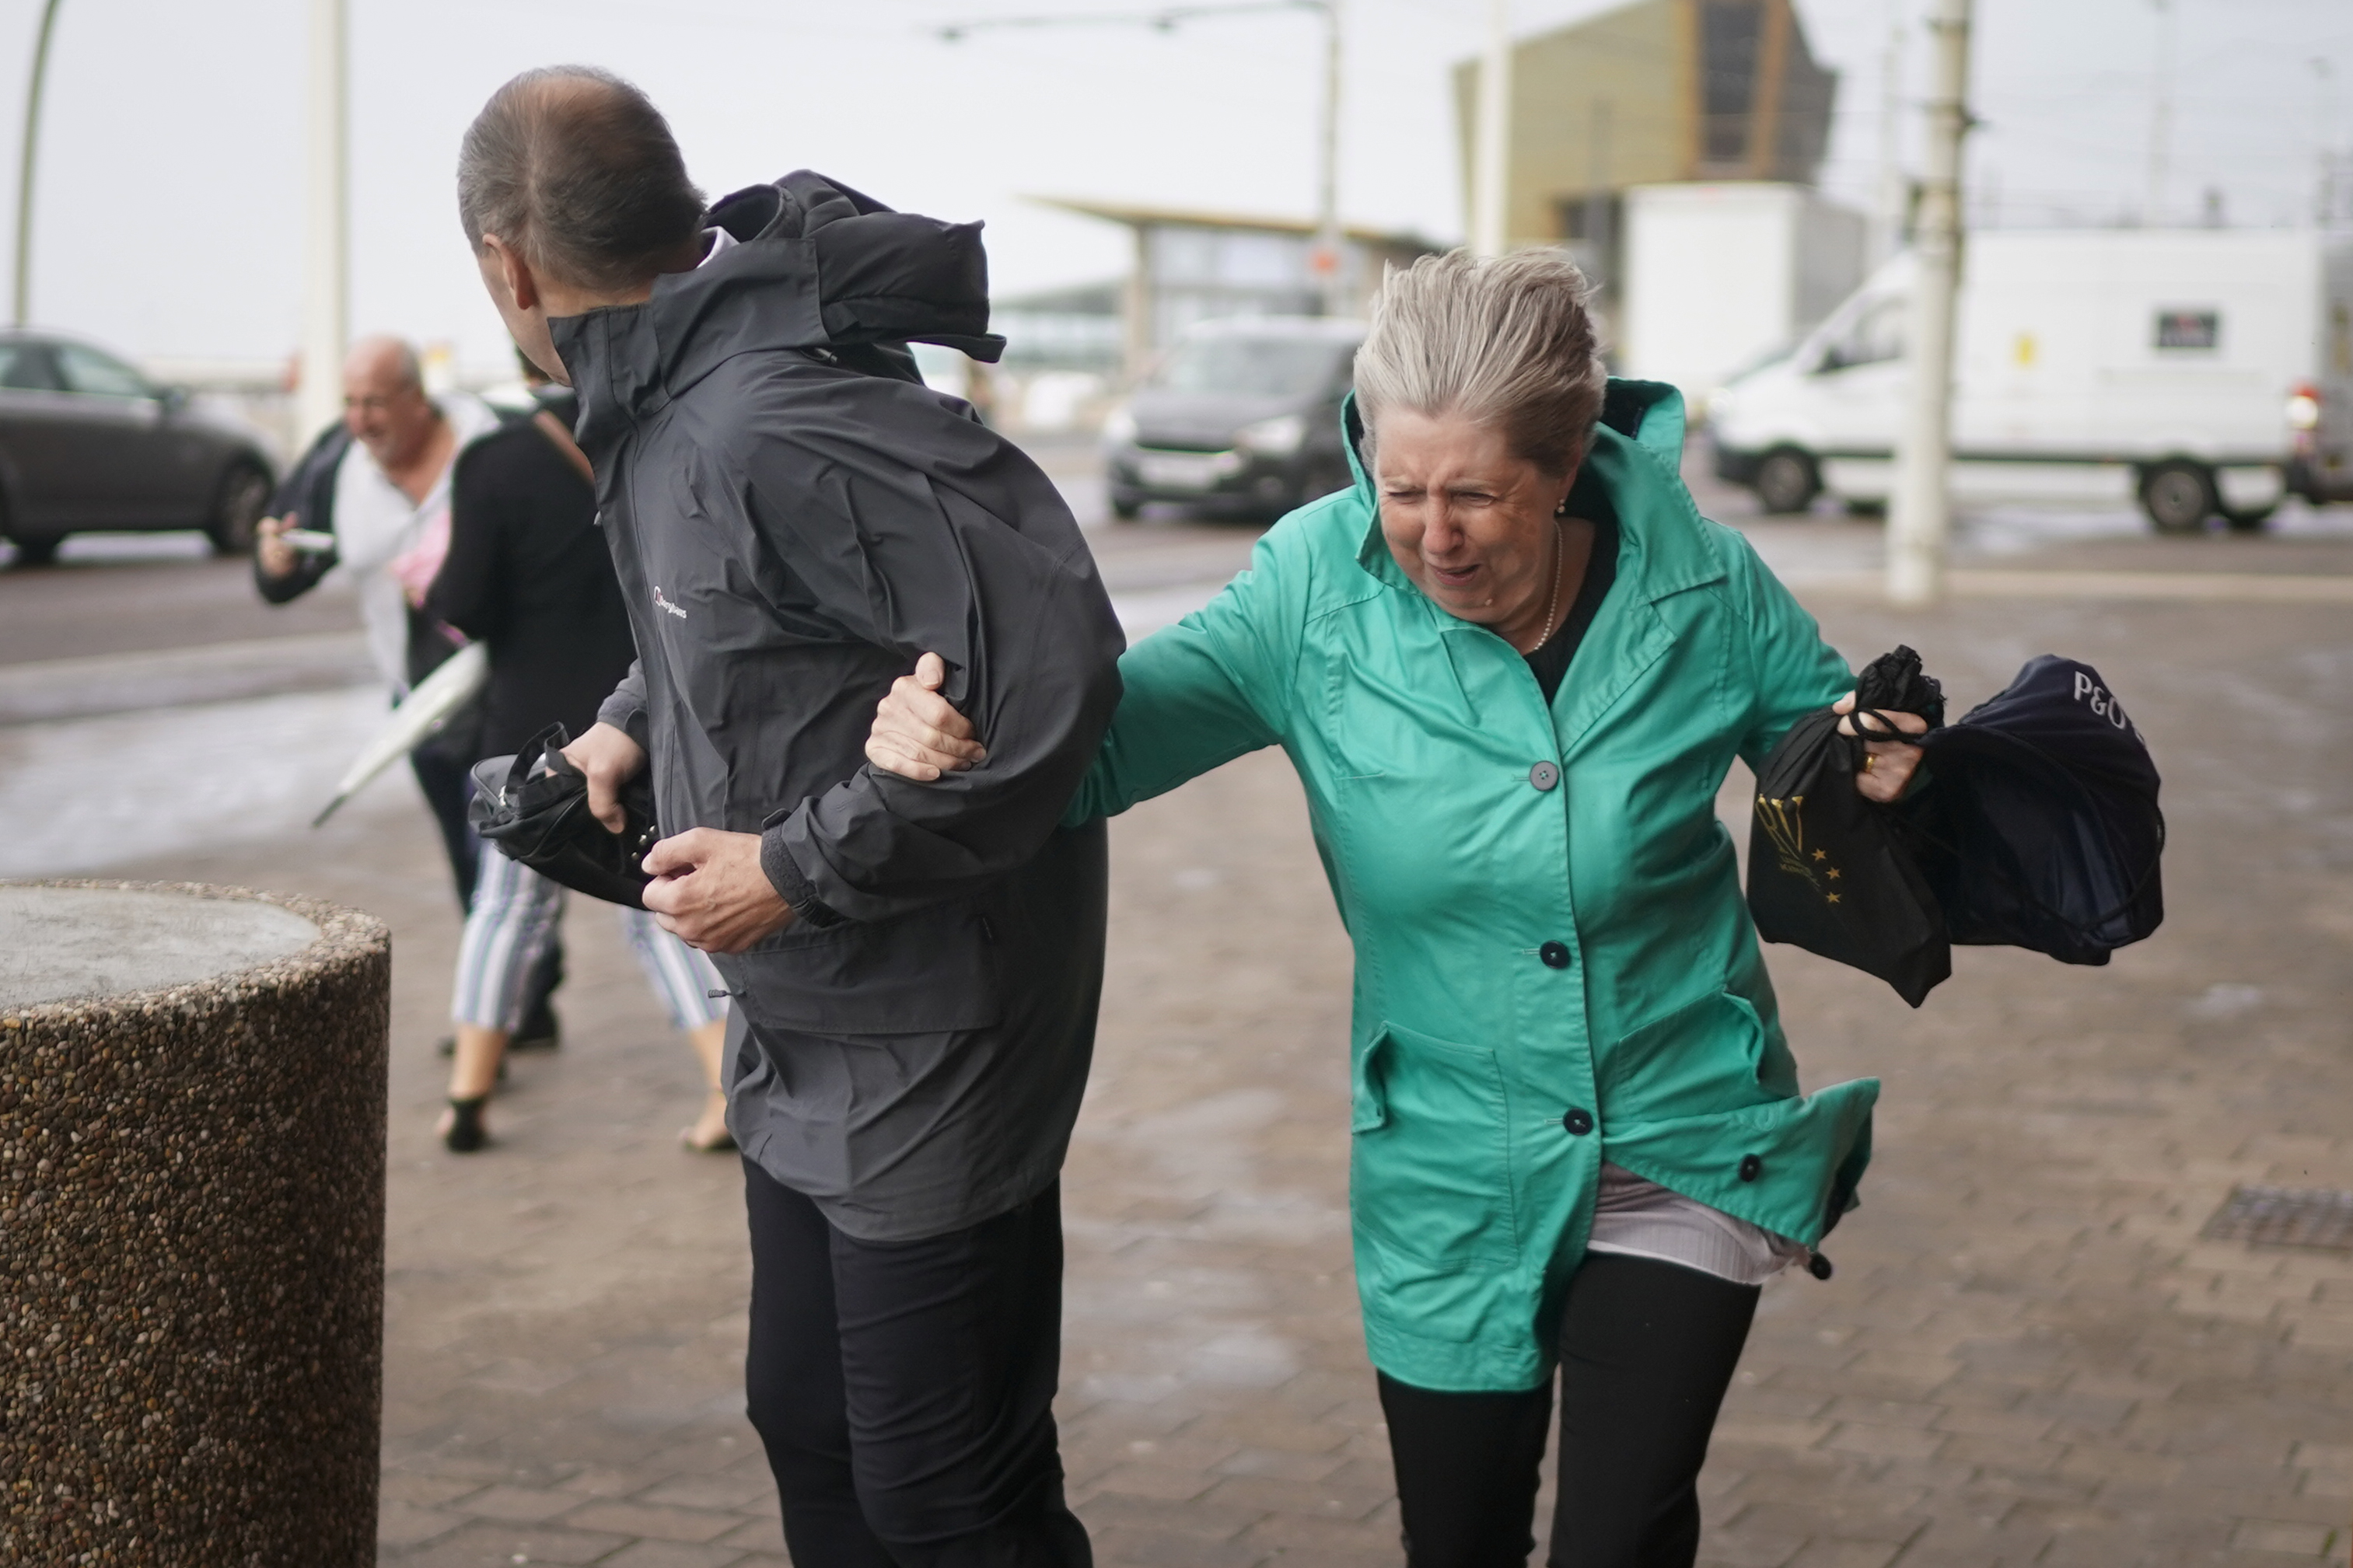 BLACKPOOL, ENGLAND - SEPTEMBER 19: Members of the public struggle in the wind as Storm Ali hits land on September 19, 2018 in Blackpool, England. Severe gales which are set to get up to as much as 80mph are causing road, rail and ferry travel disruption as Storm Ali hits parts of the United Kigndom. (Photo by Christopher Furlong/Getty Images)